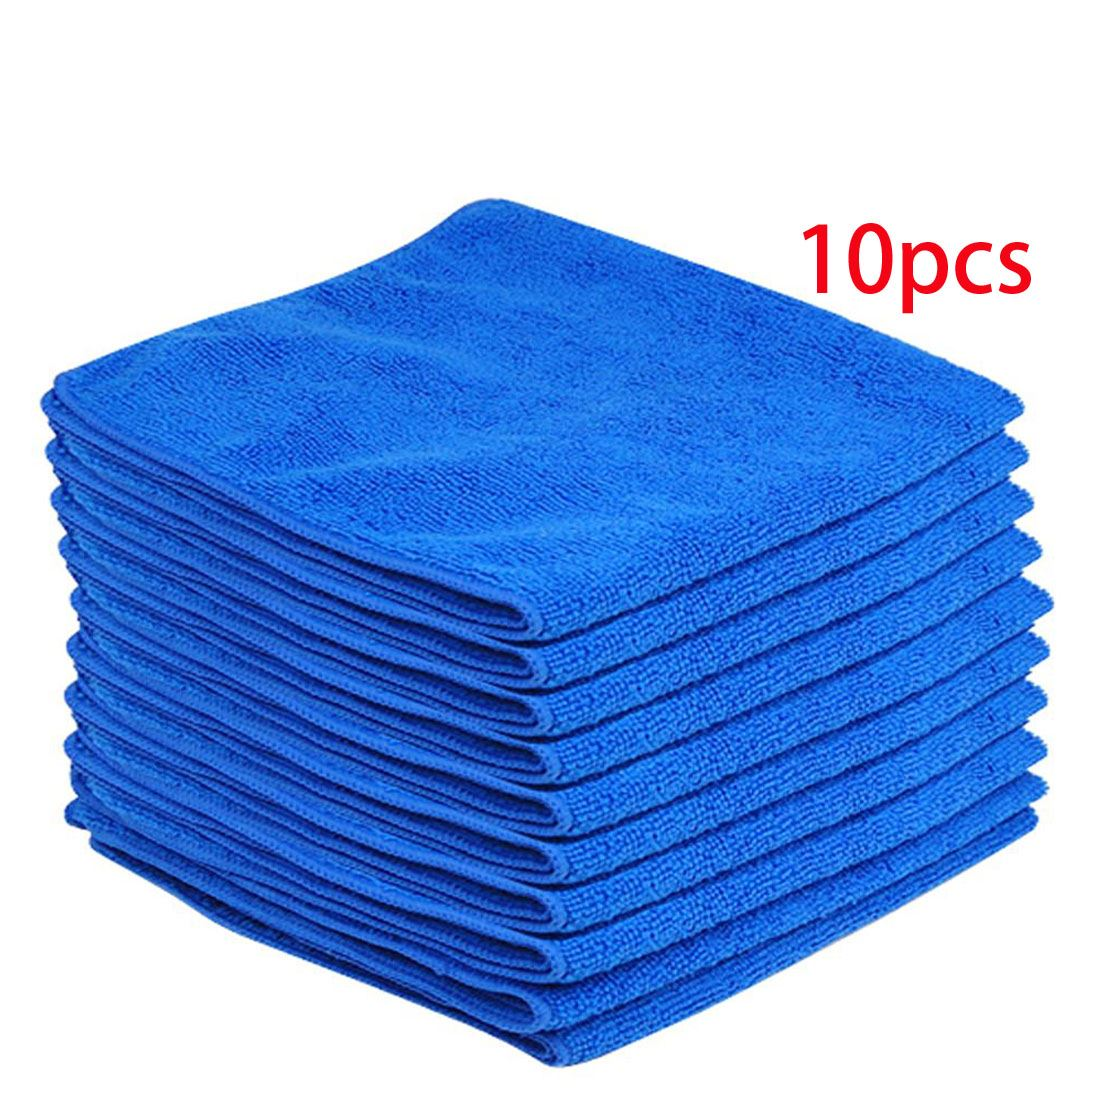 10x large microfiber cleaning auto car detailing soft cloth towel duster wash ebay. Black Bedroom Furniture Sets. Home Design Ideas